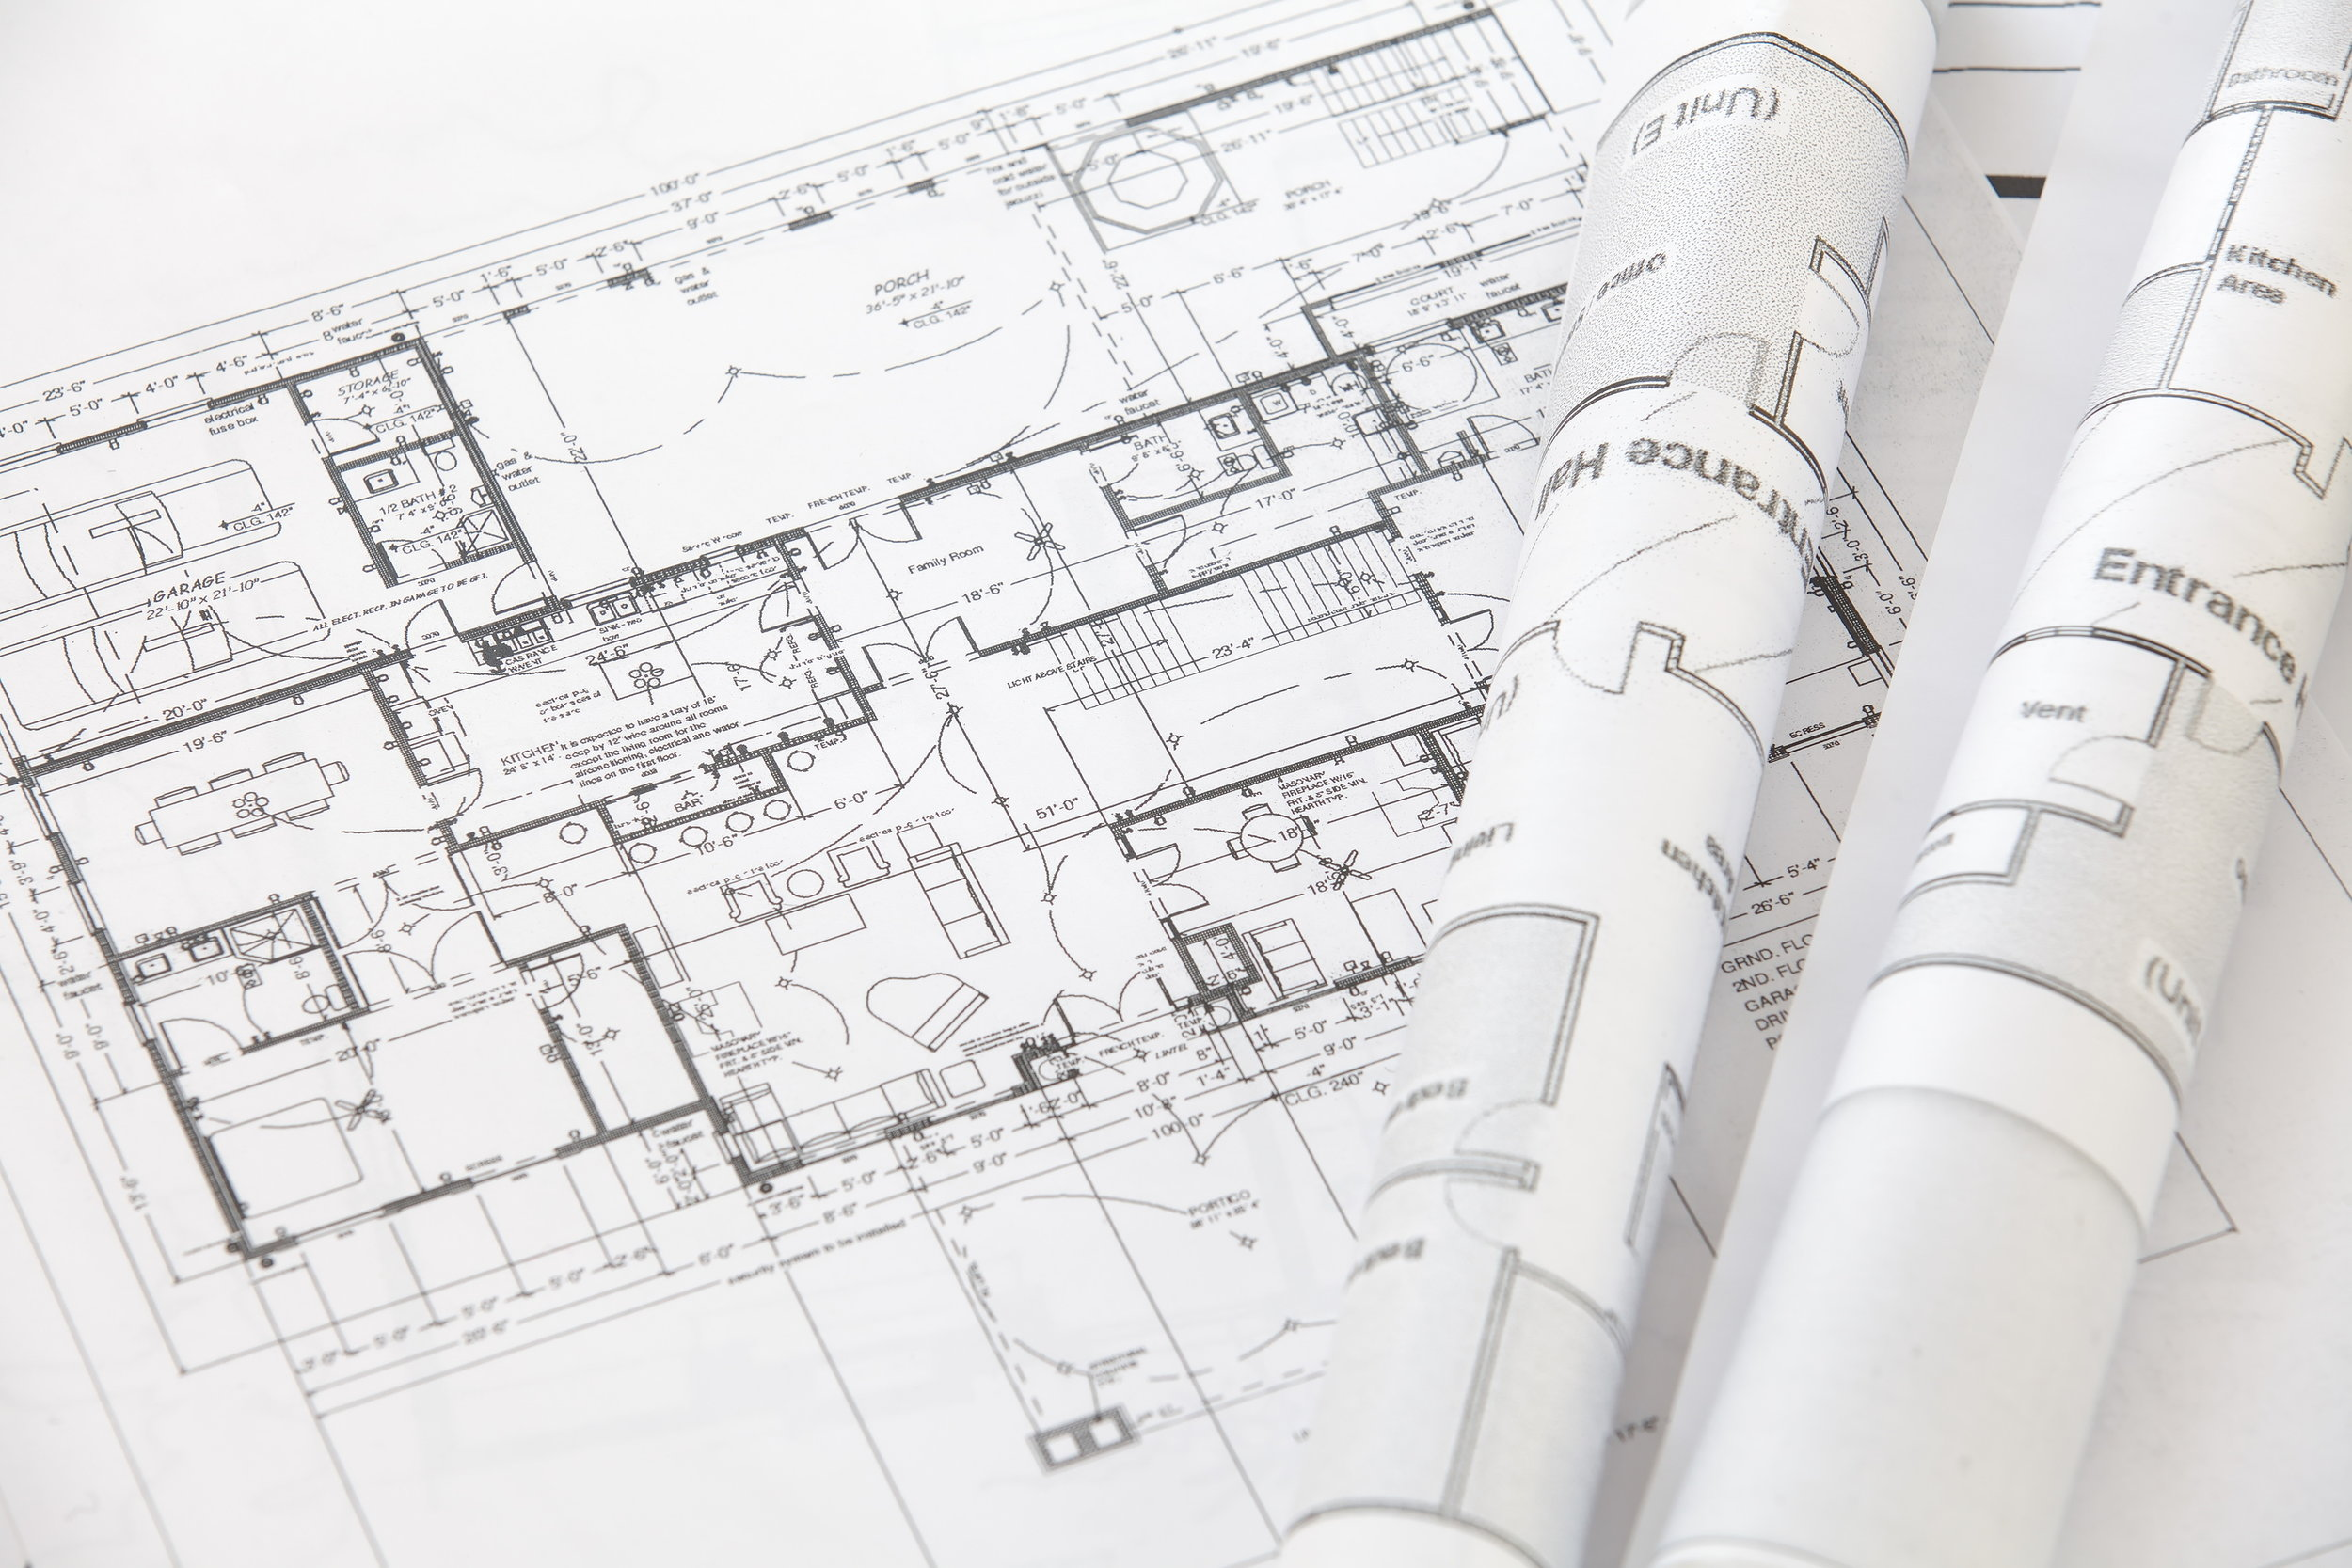 Architect rolls and plans architectural plan.jpg